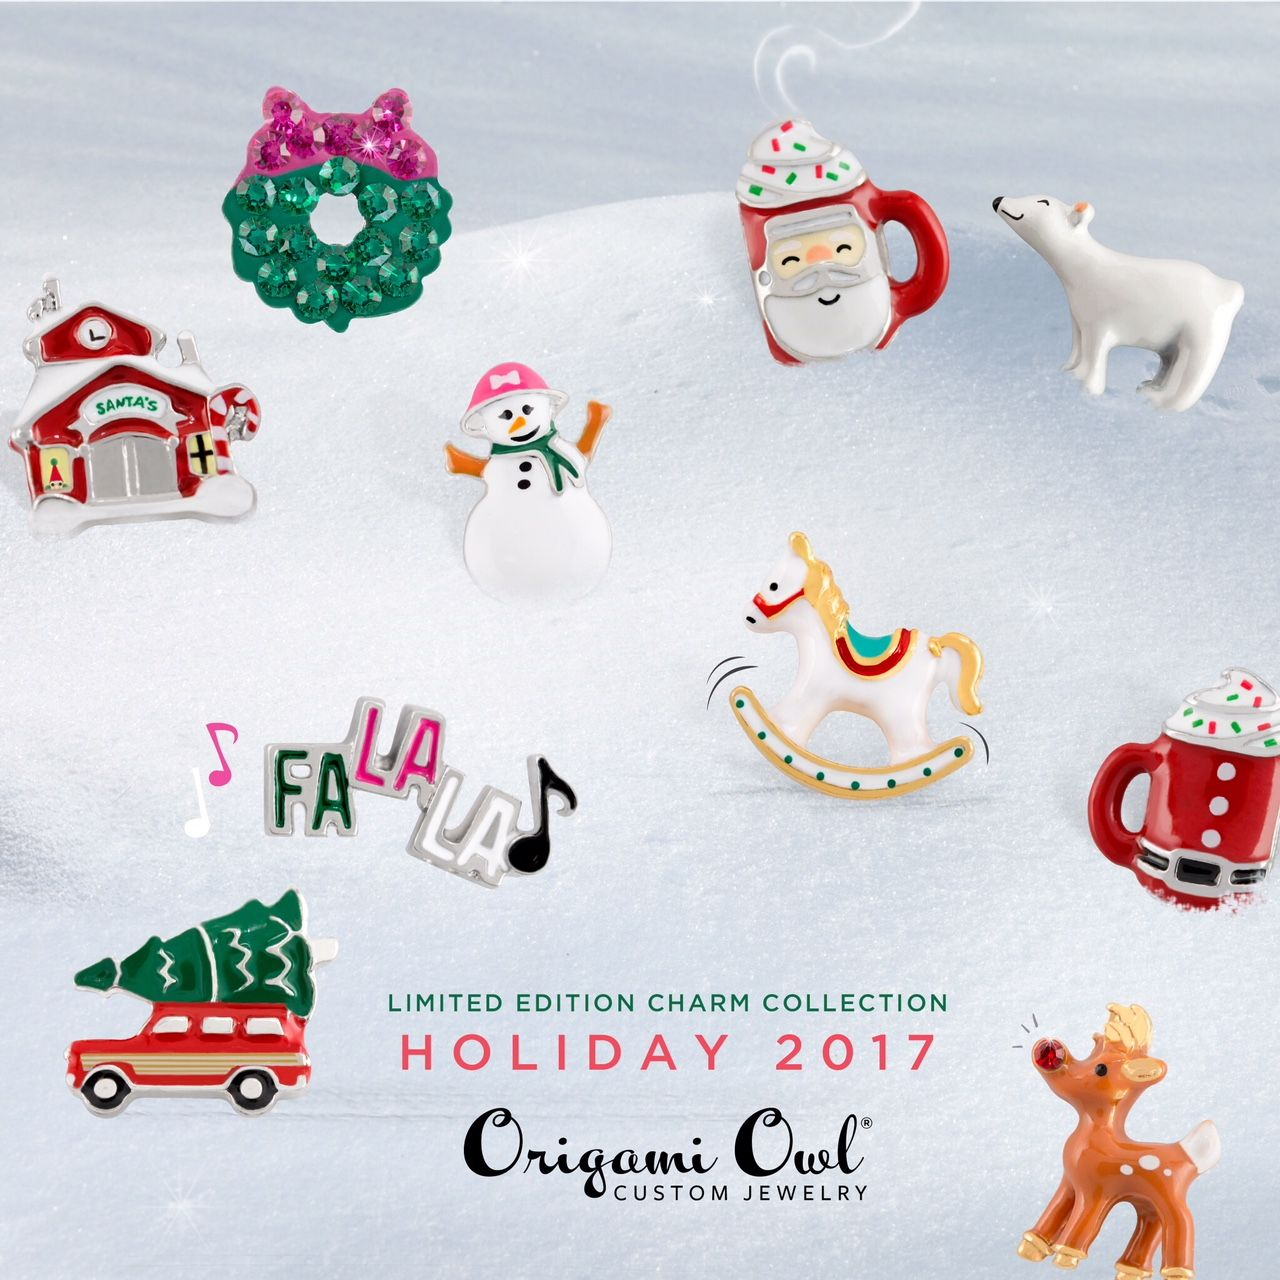 Member article posted by kristy empol on sassy direct origami origami owl member article posted by kristy empol on sassy direct jeuxipadfo Gallery